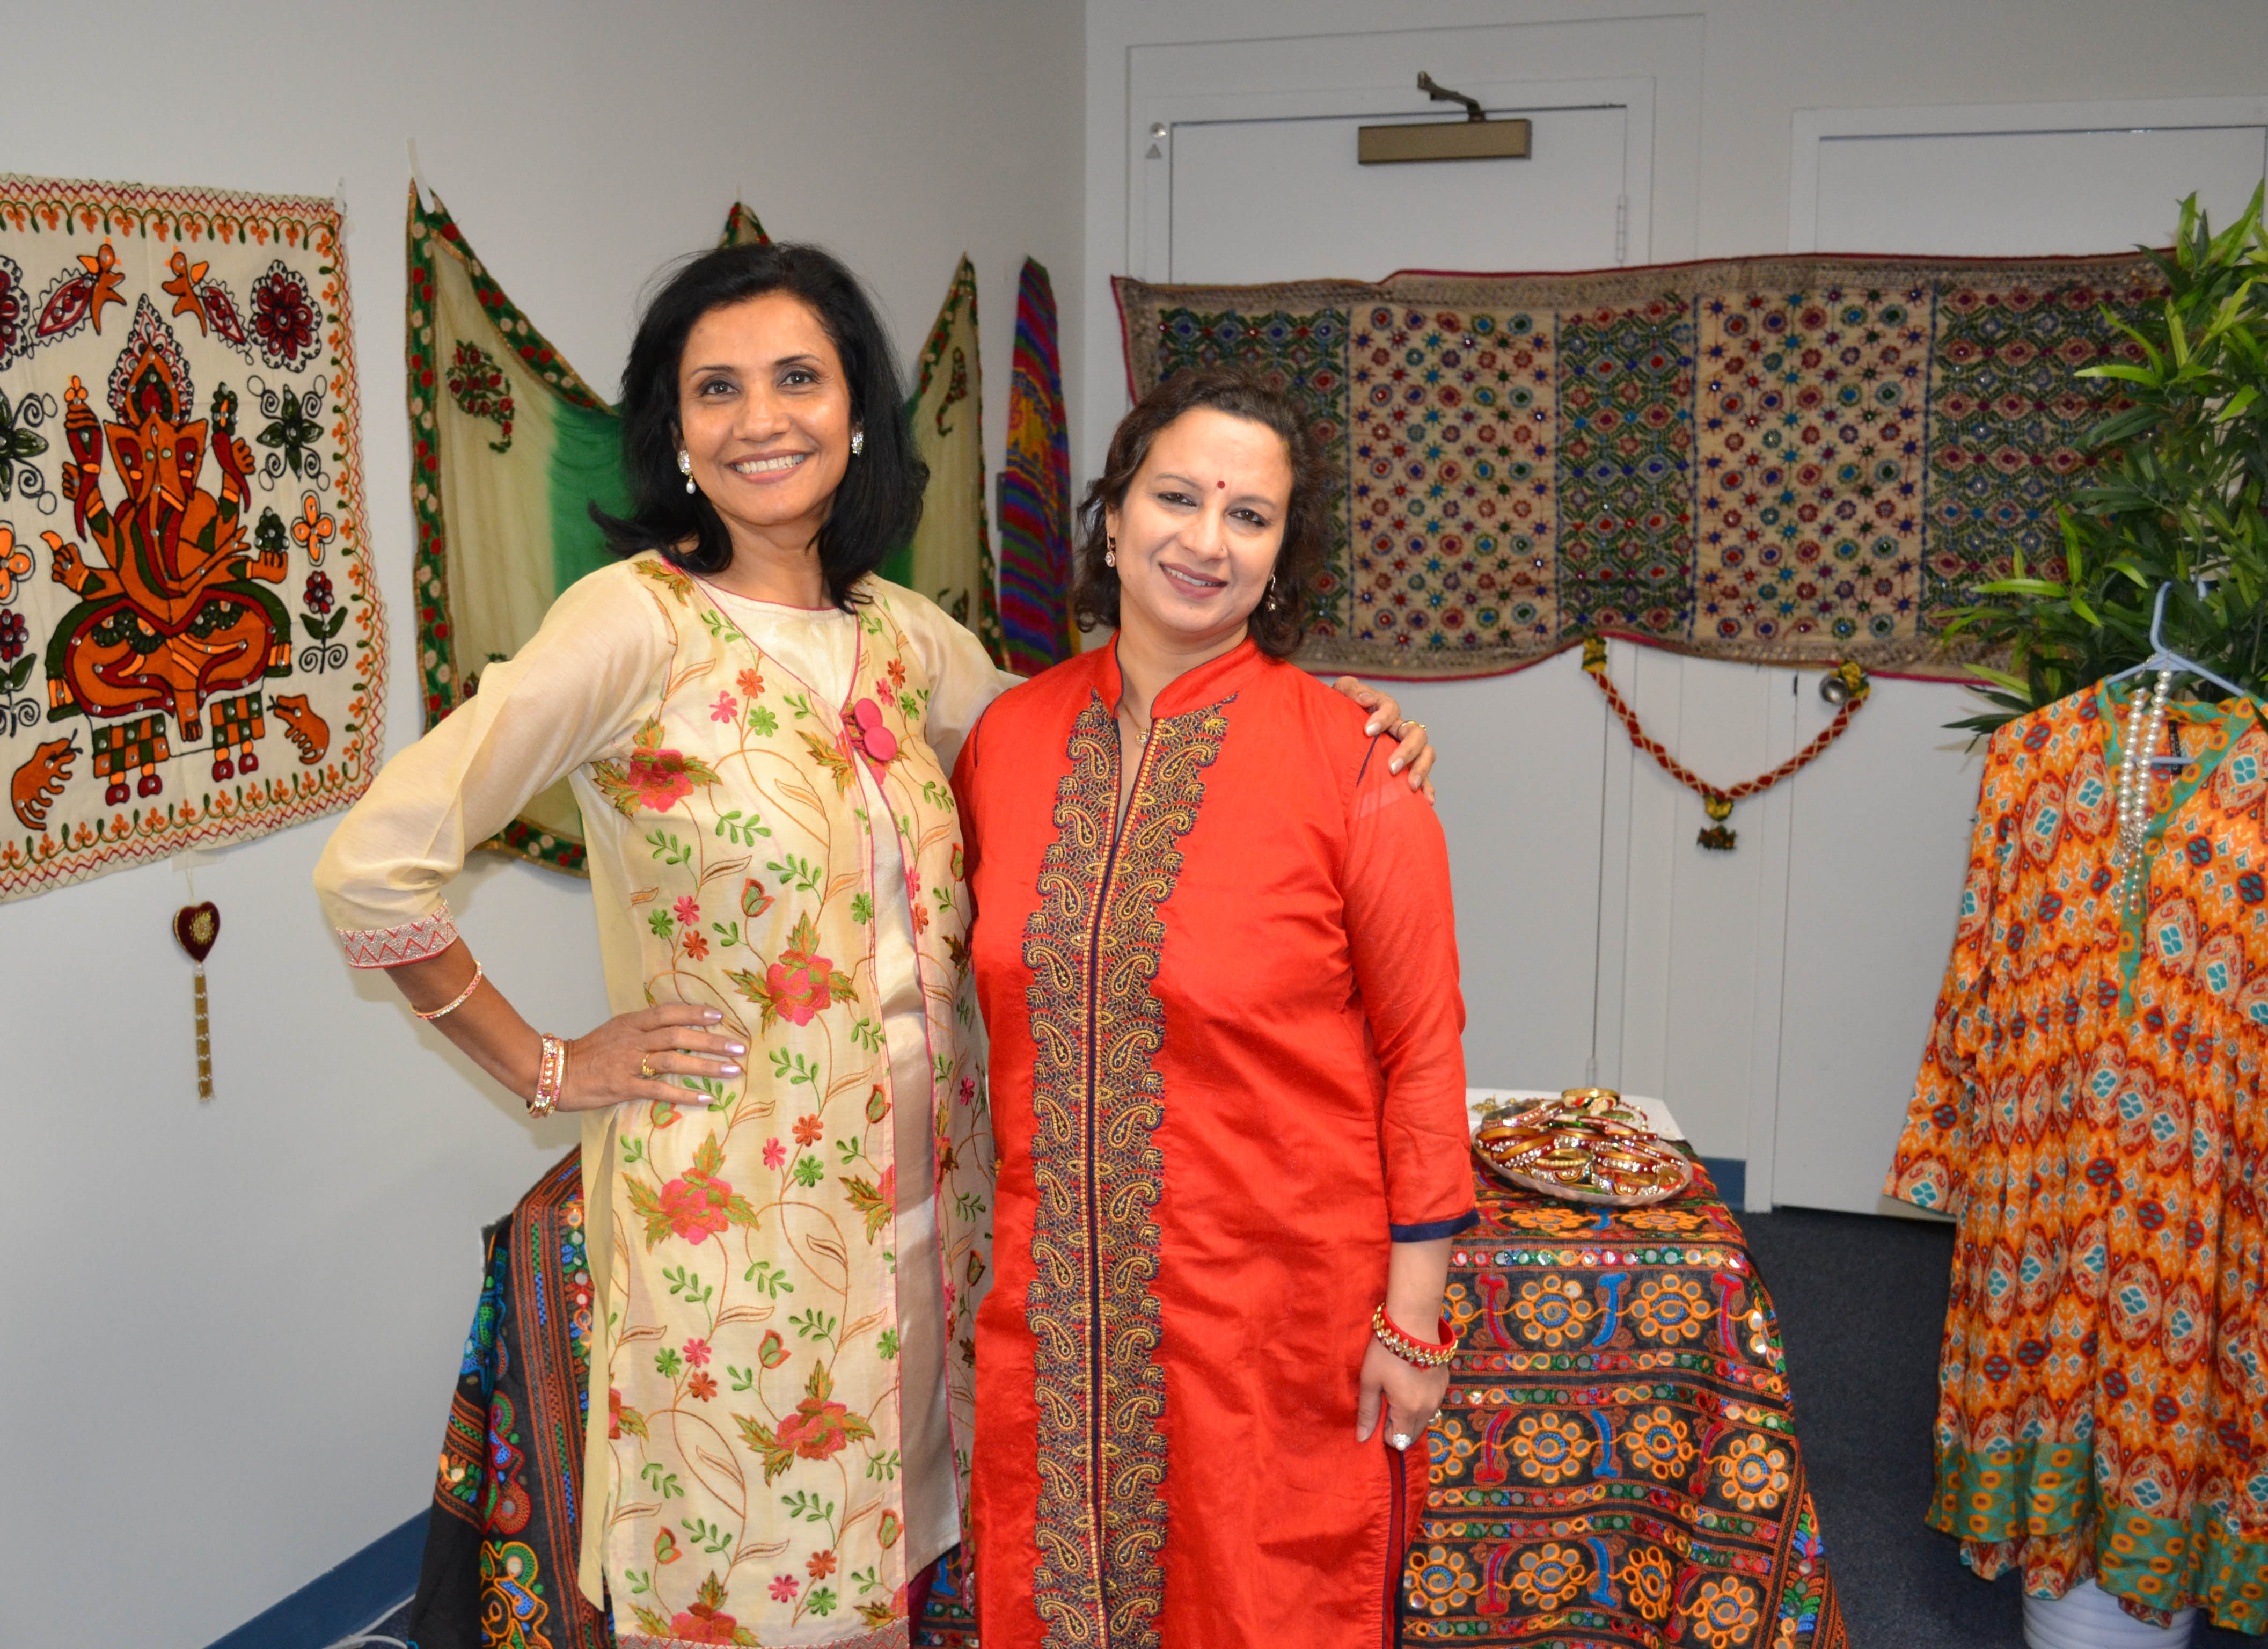 Diplomatic Language Services celebrates Hindi New Year at New Years Around The World event